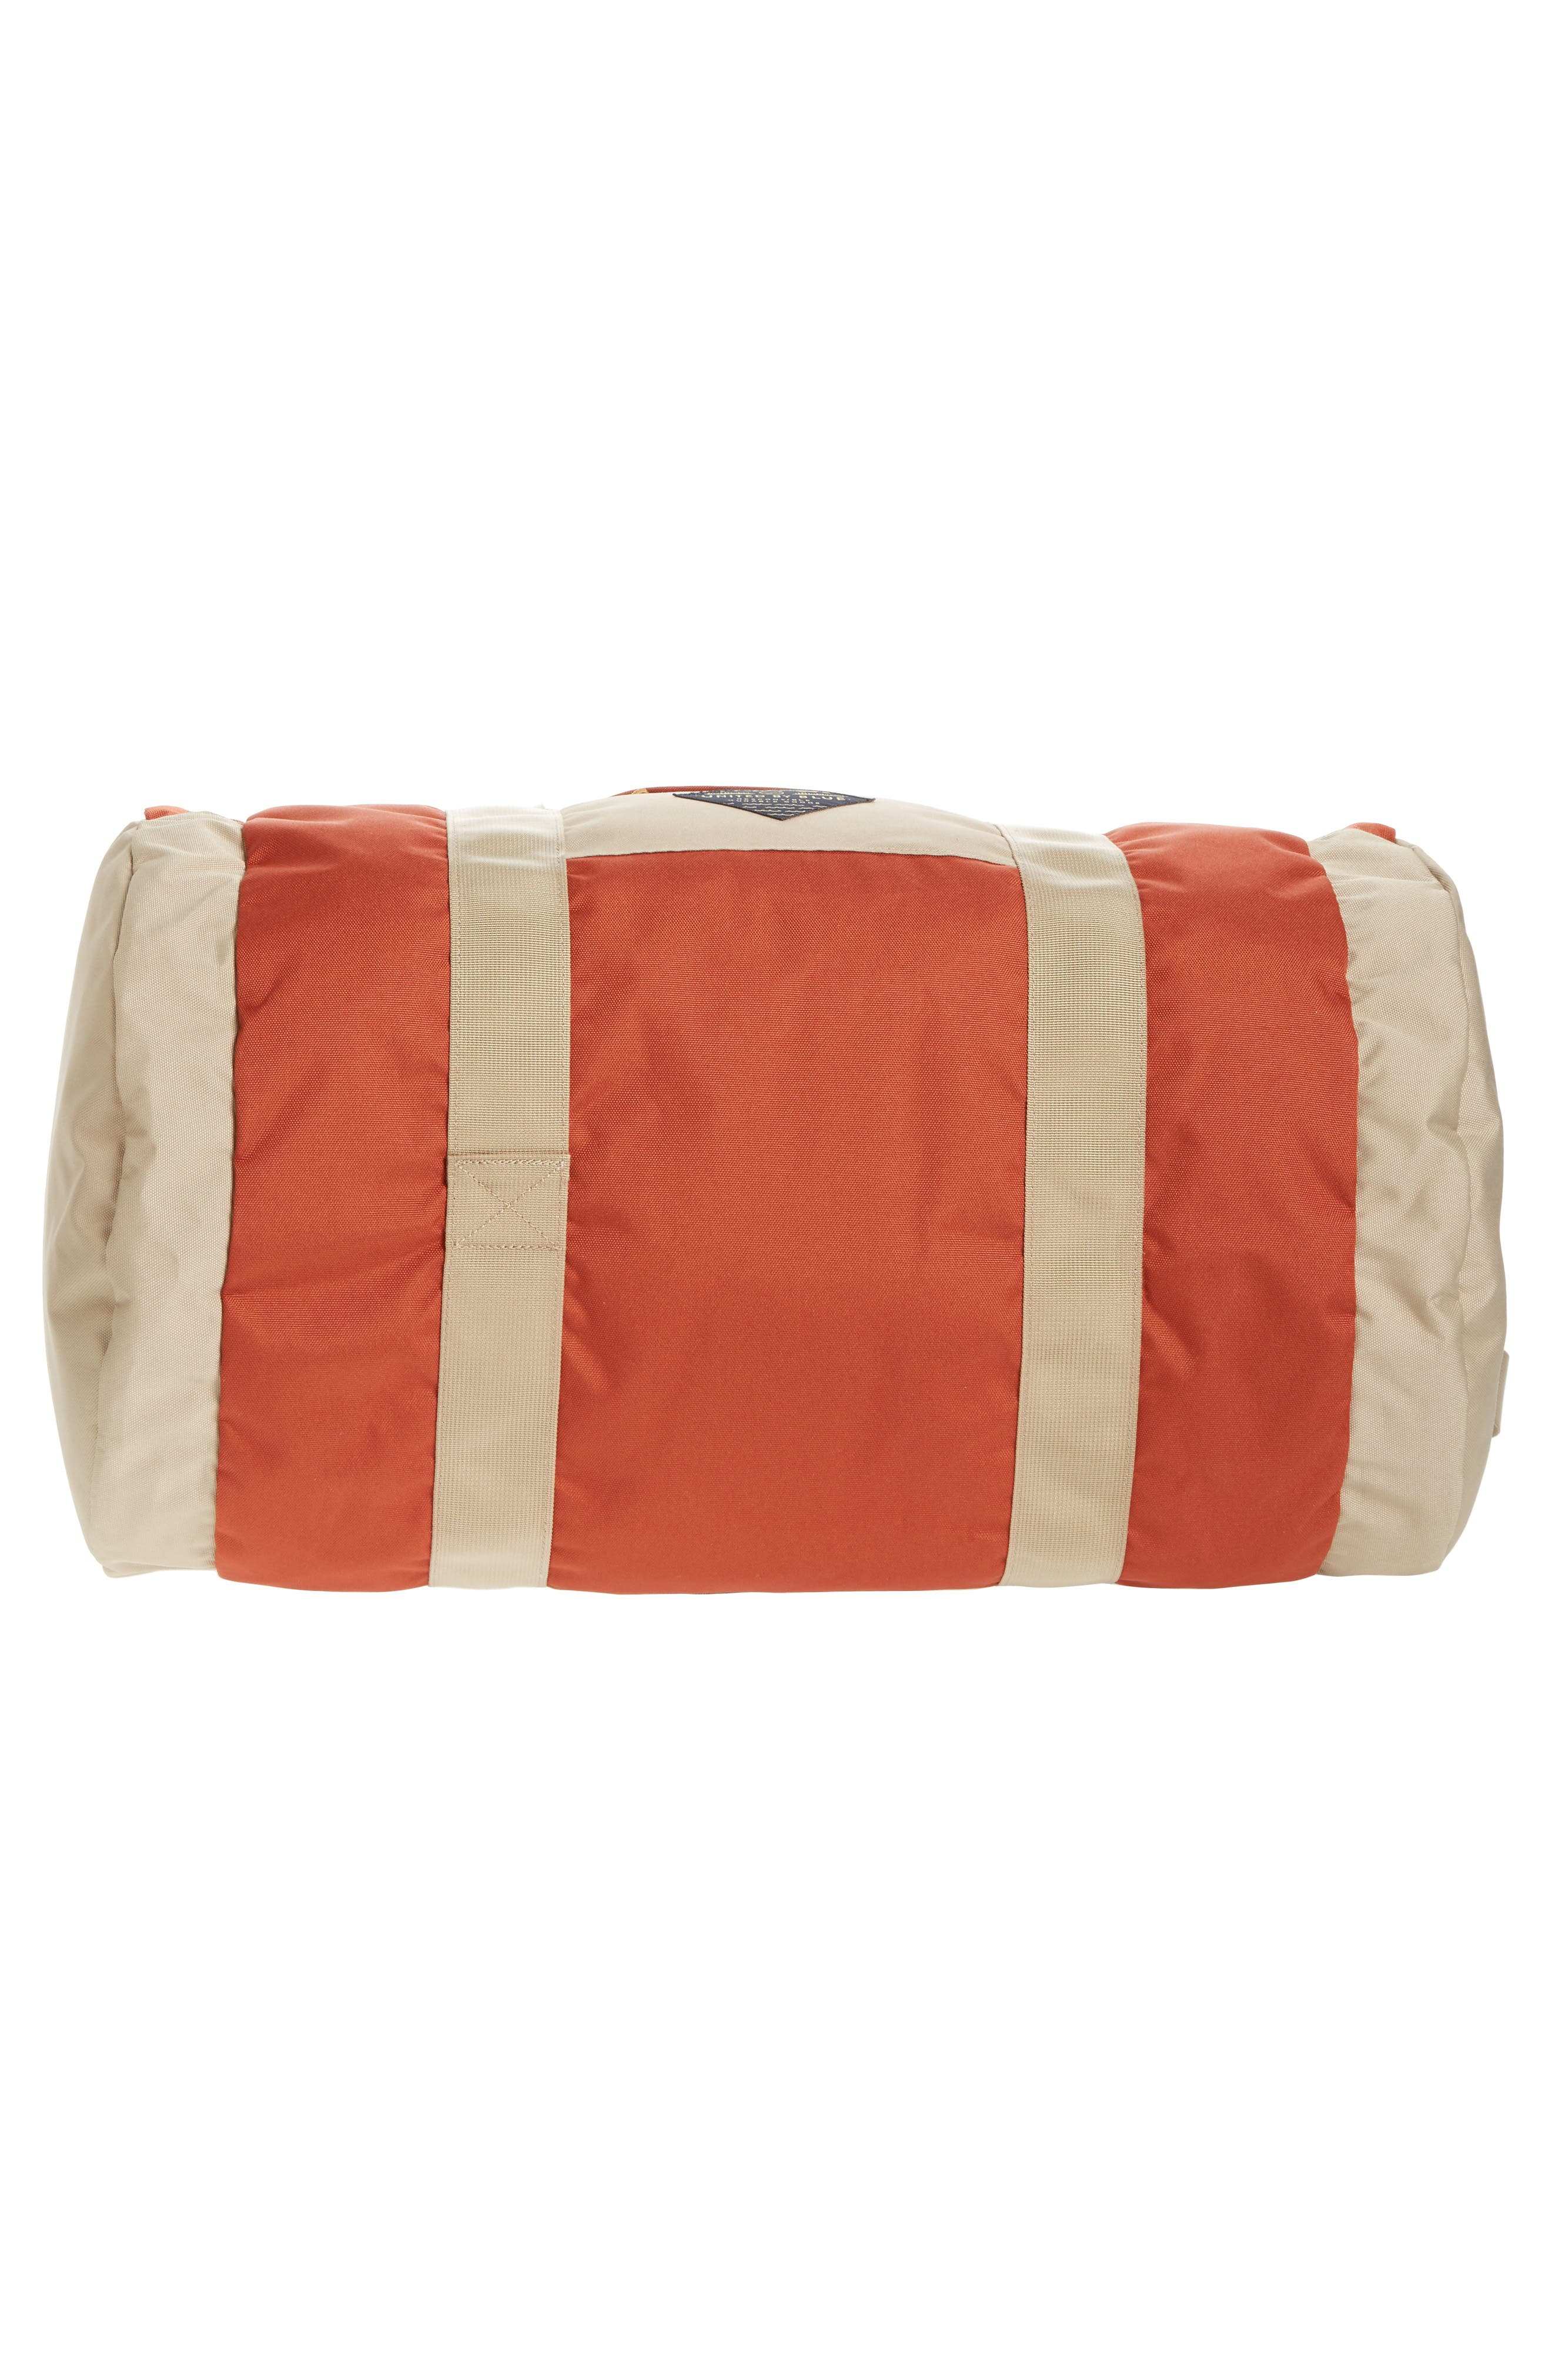 Arc Duffel Bag,                             Alternate thumbnail 6, color,                             Rust/ Tan